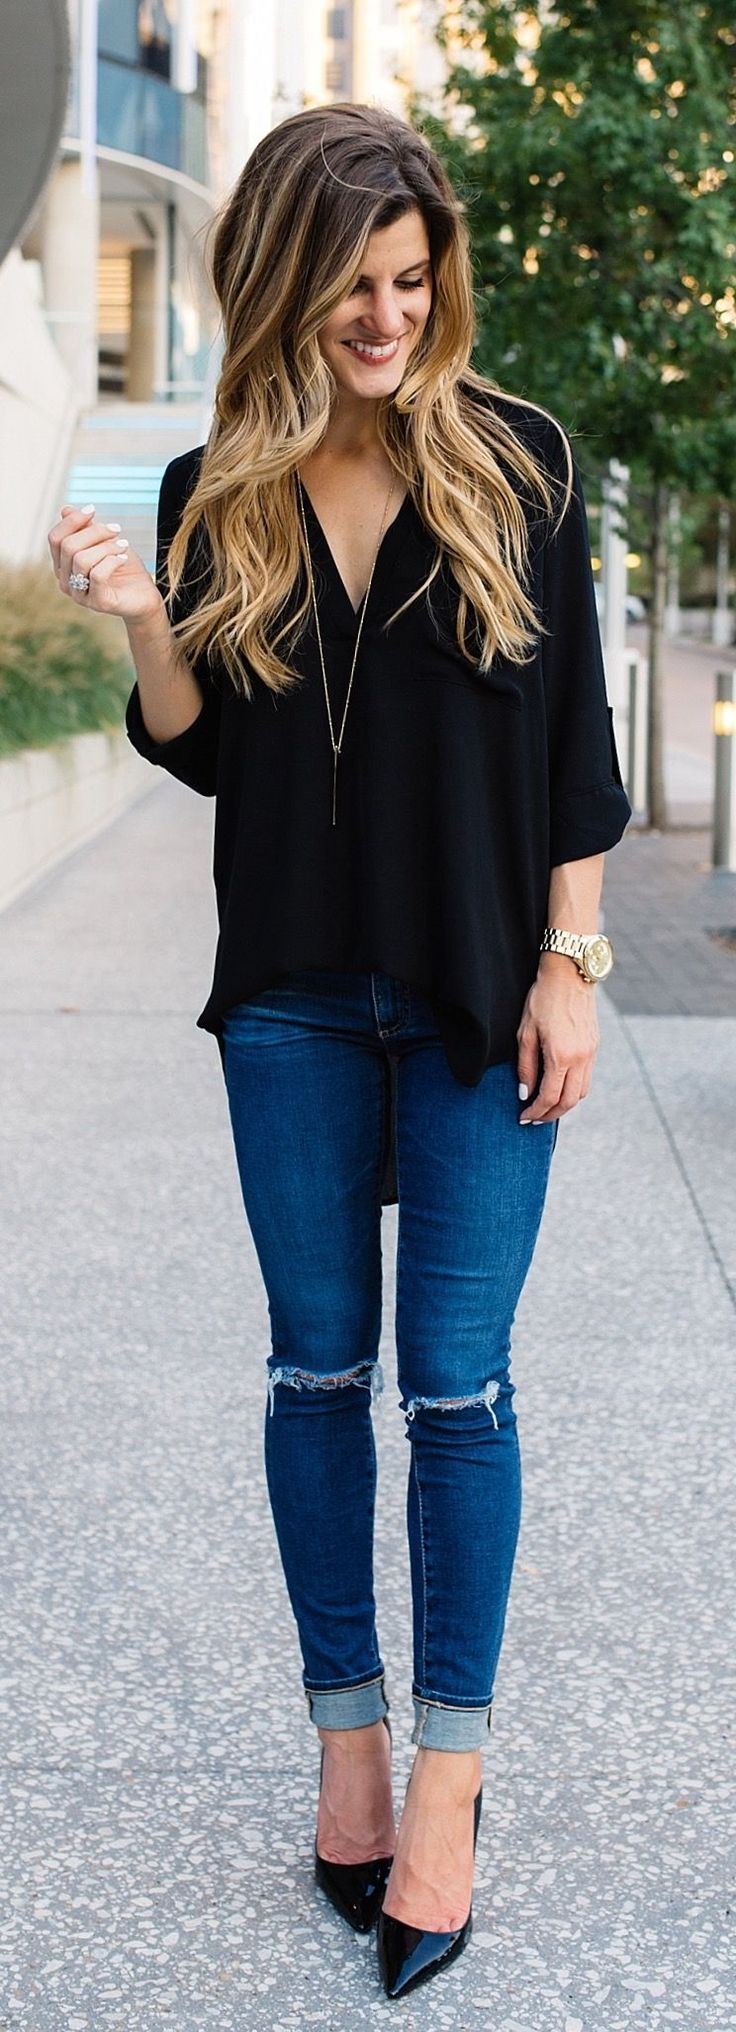 Flawless 50+ Best Fall Outfit für Frauen fashiotopia.com / … Schmücke dich mit …  #fashiotopia #flawless #frauen #outfit